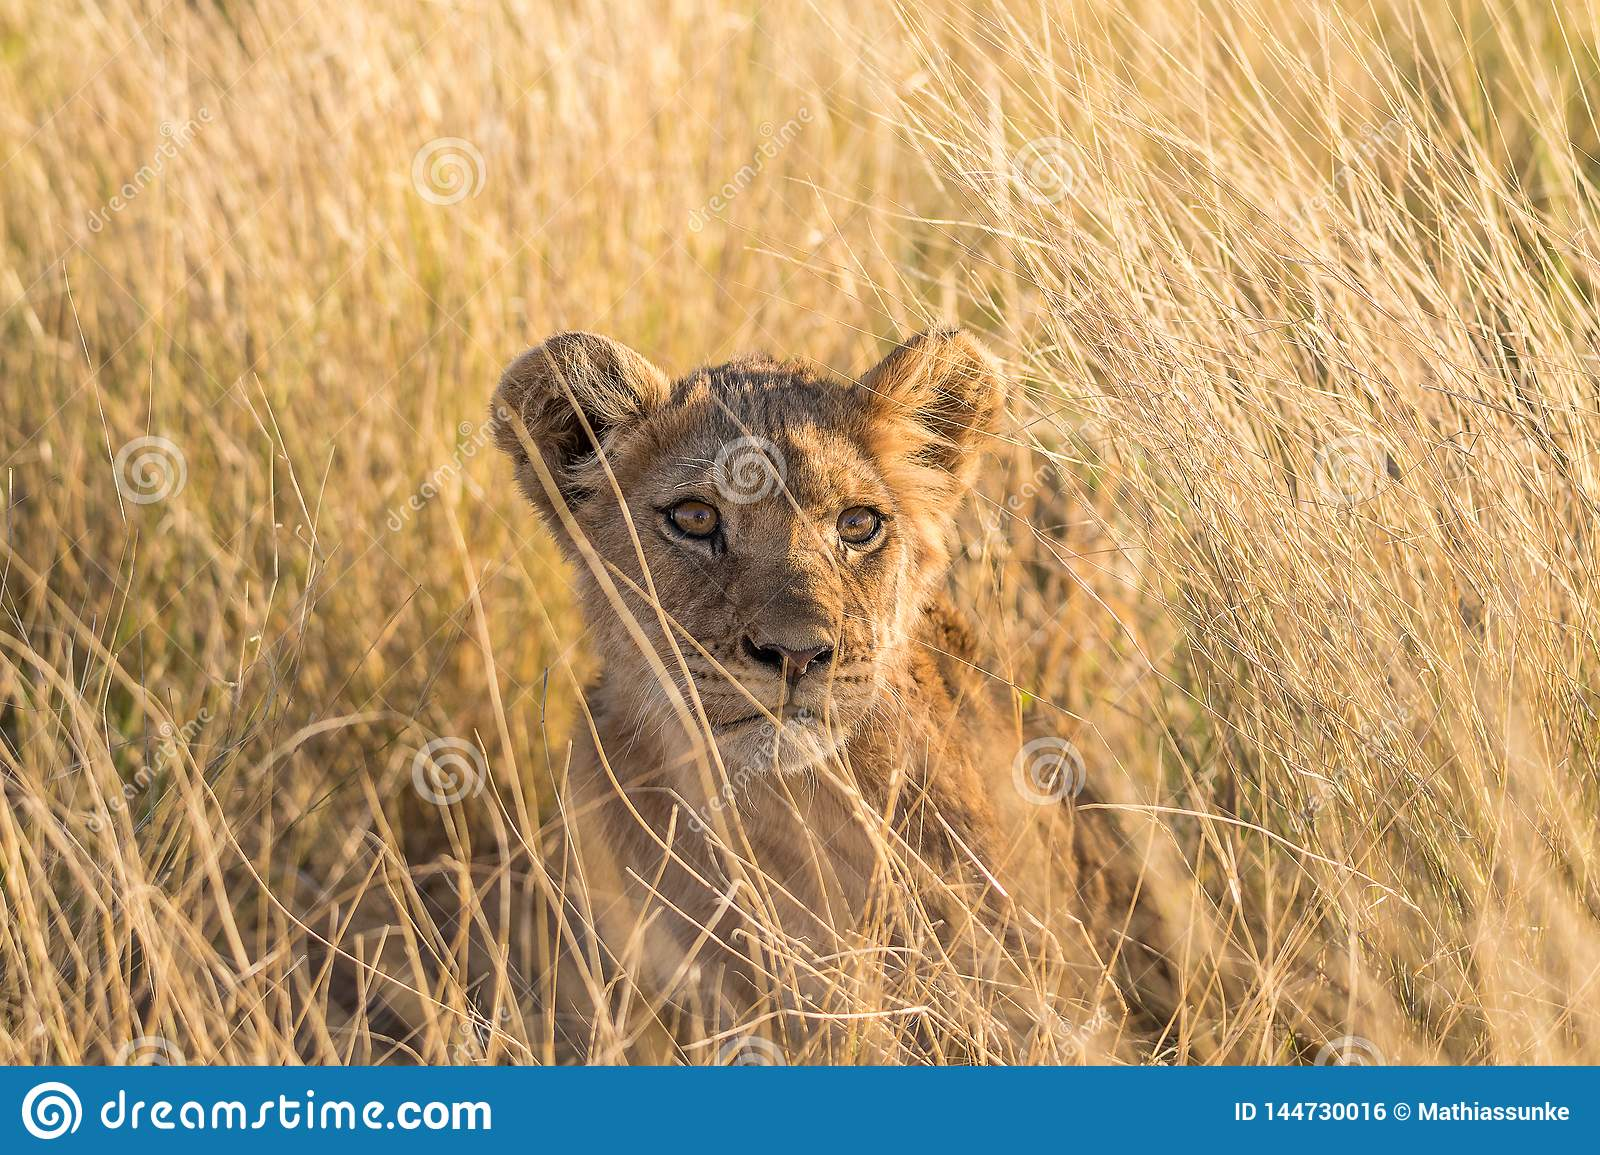 Closeup of a lion cub in the Kalahari